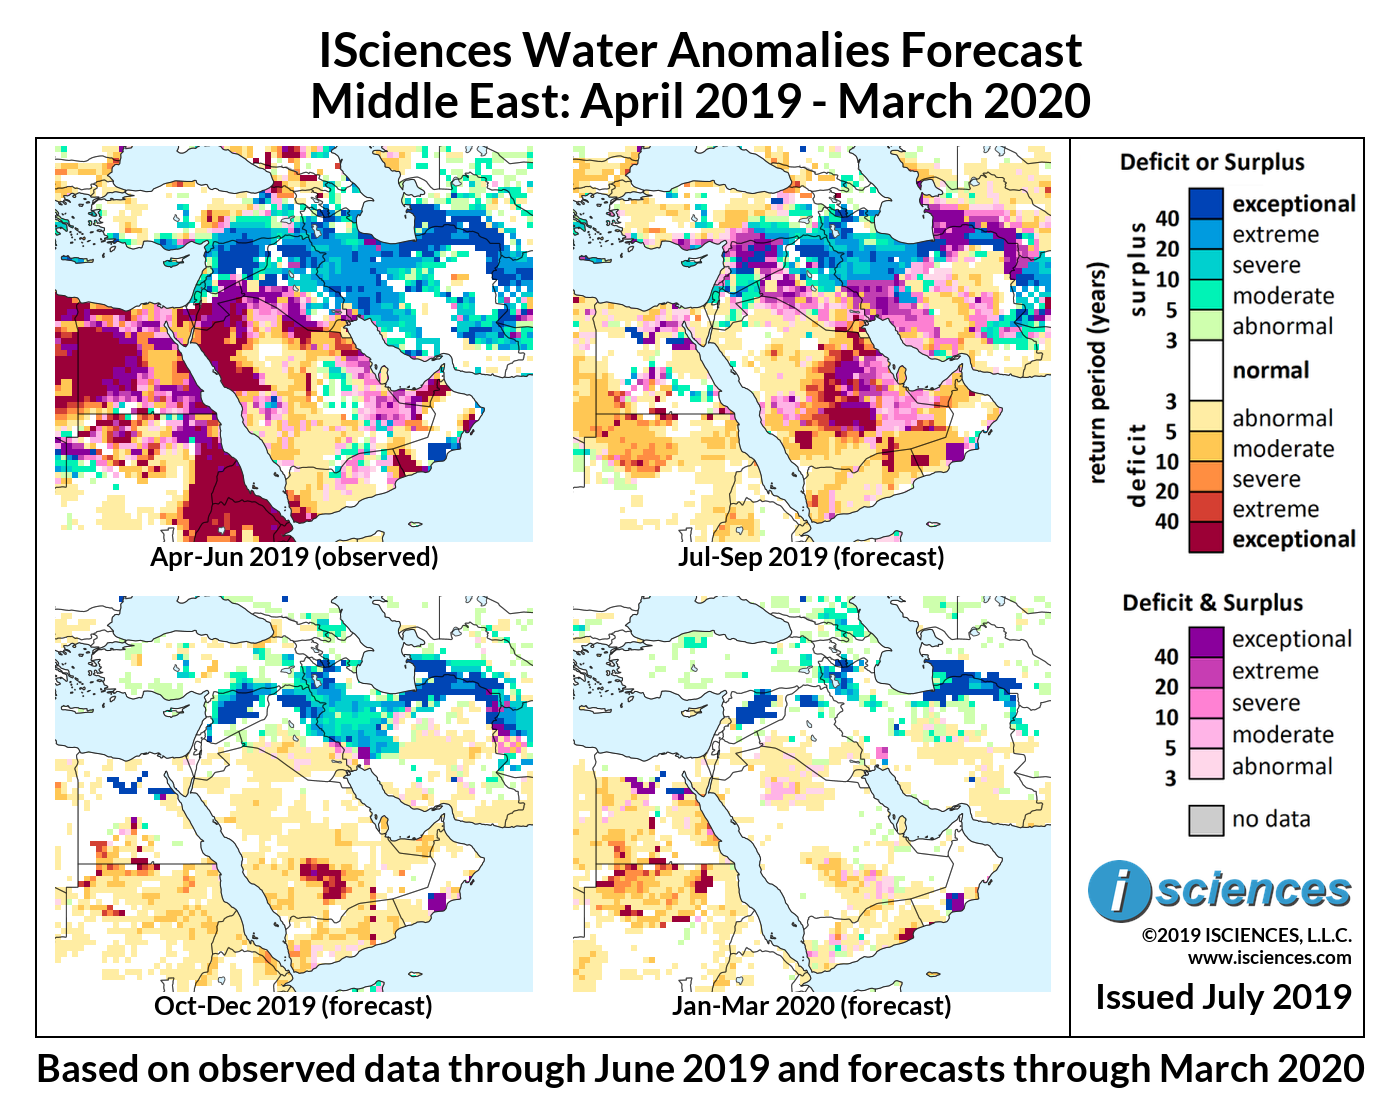 ISciences_Middle_East_Composite_Adjusted_201904-202003_3mo_panel.png